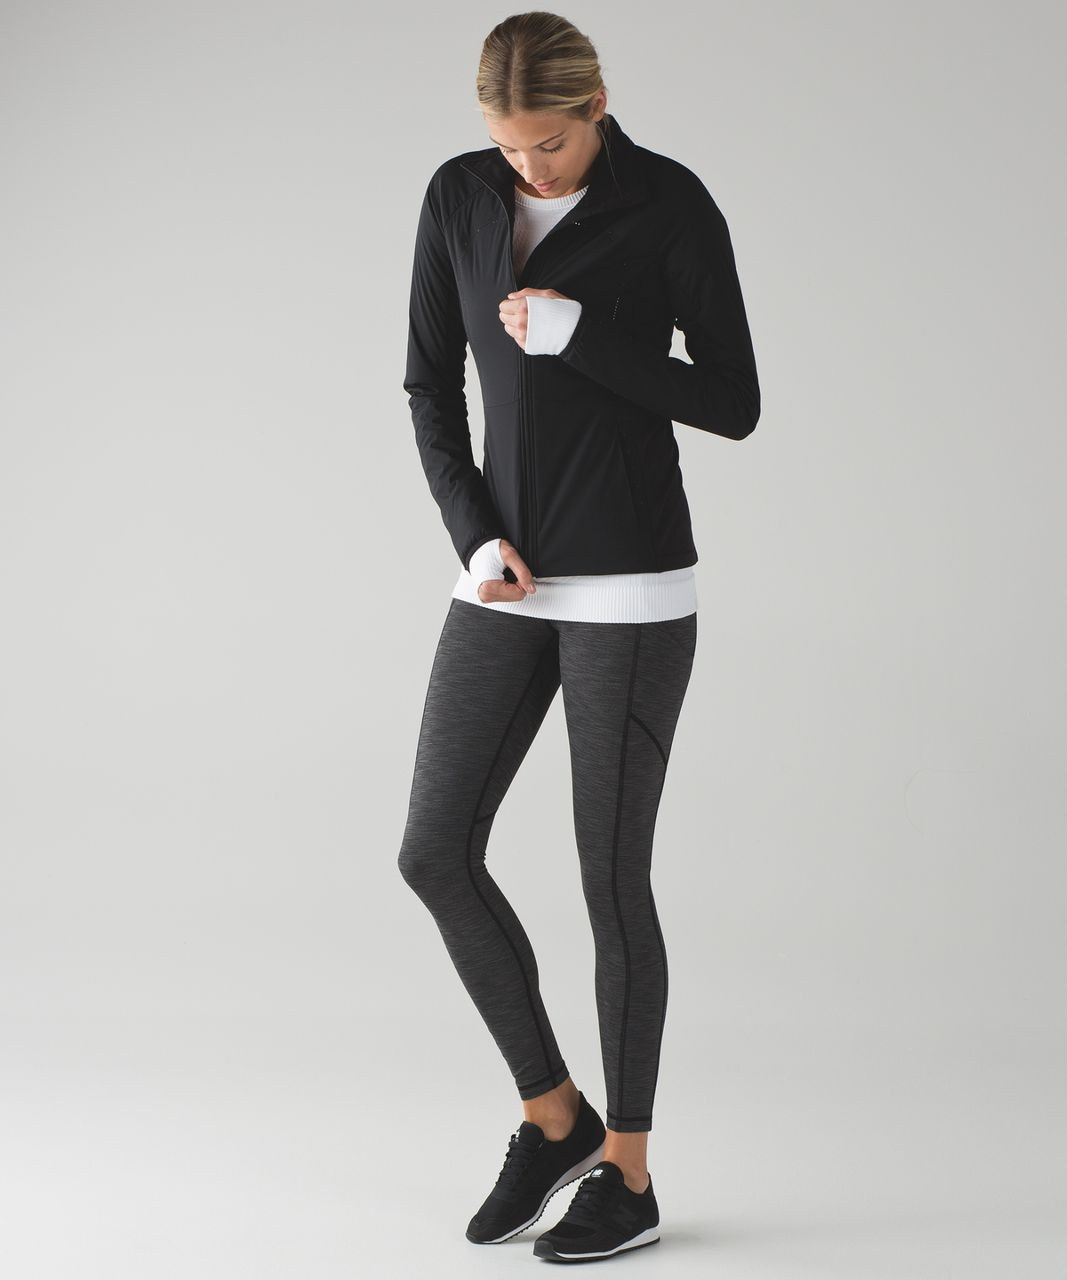 Lululemon Speed Tight V (Brushed) - Heathered Black